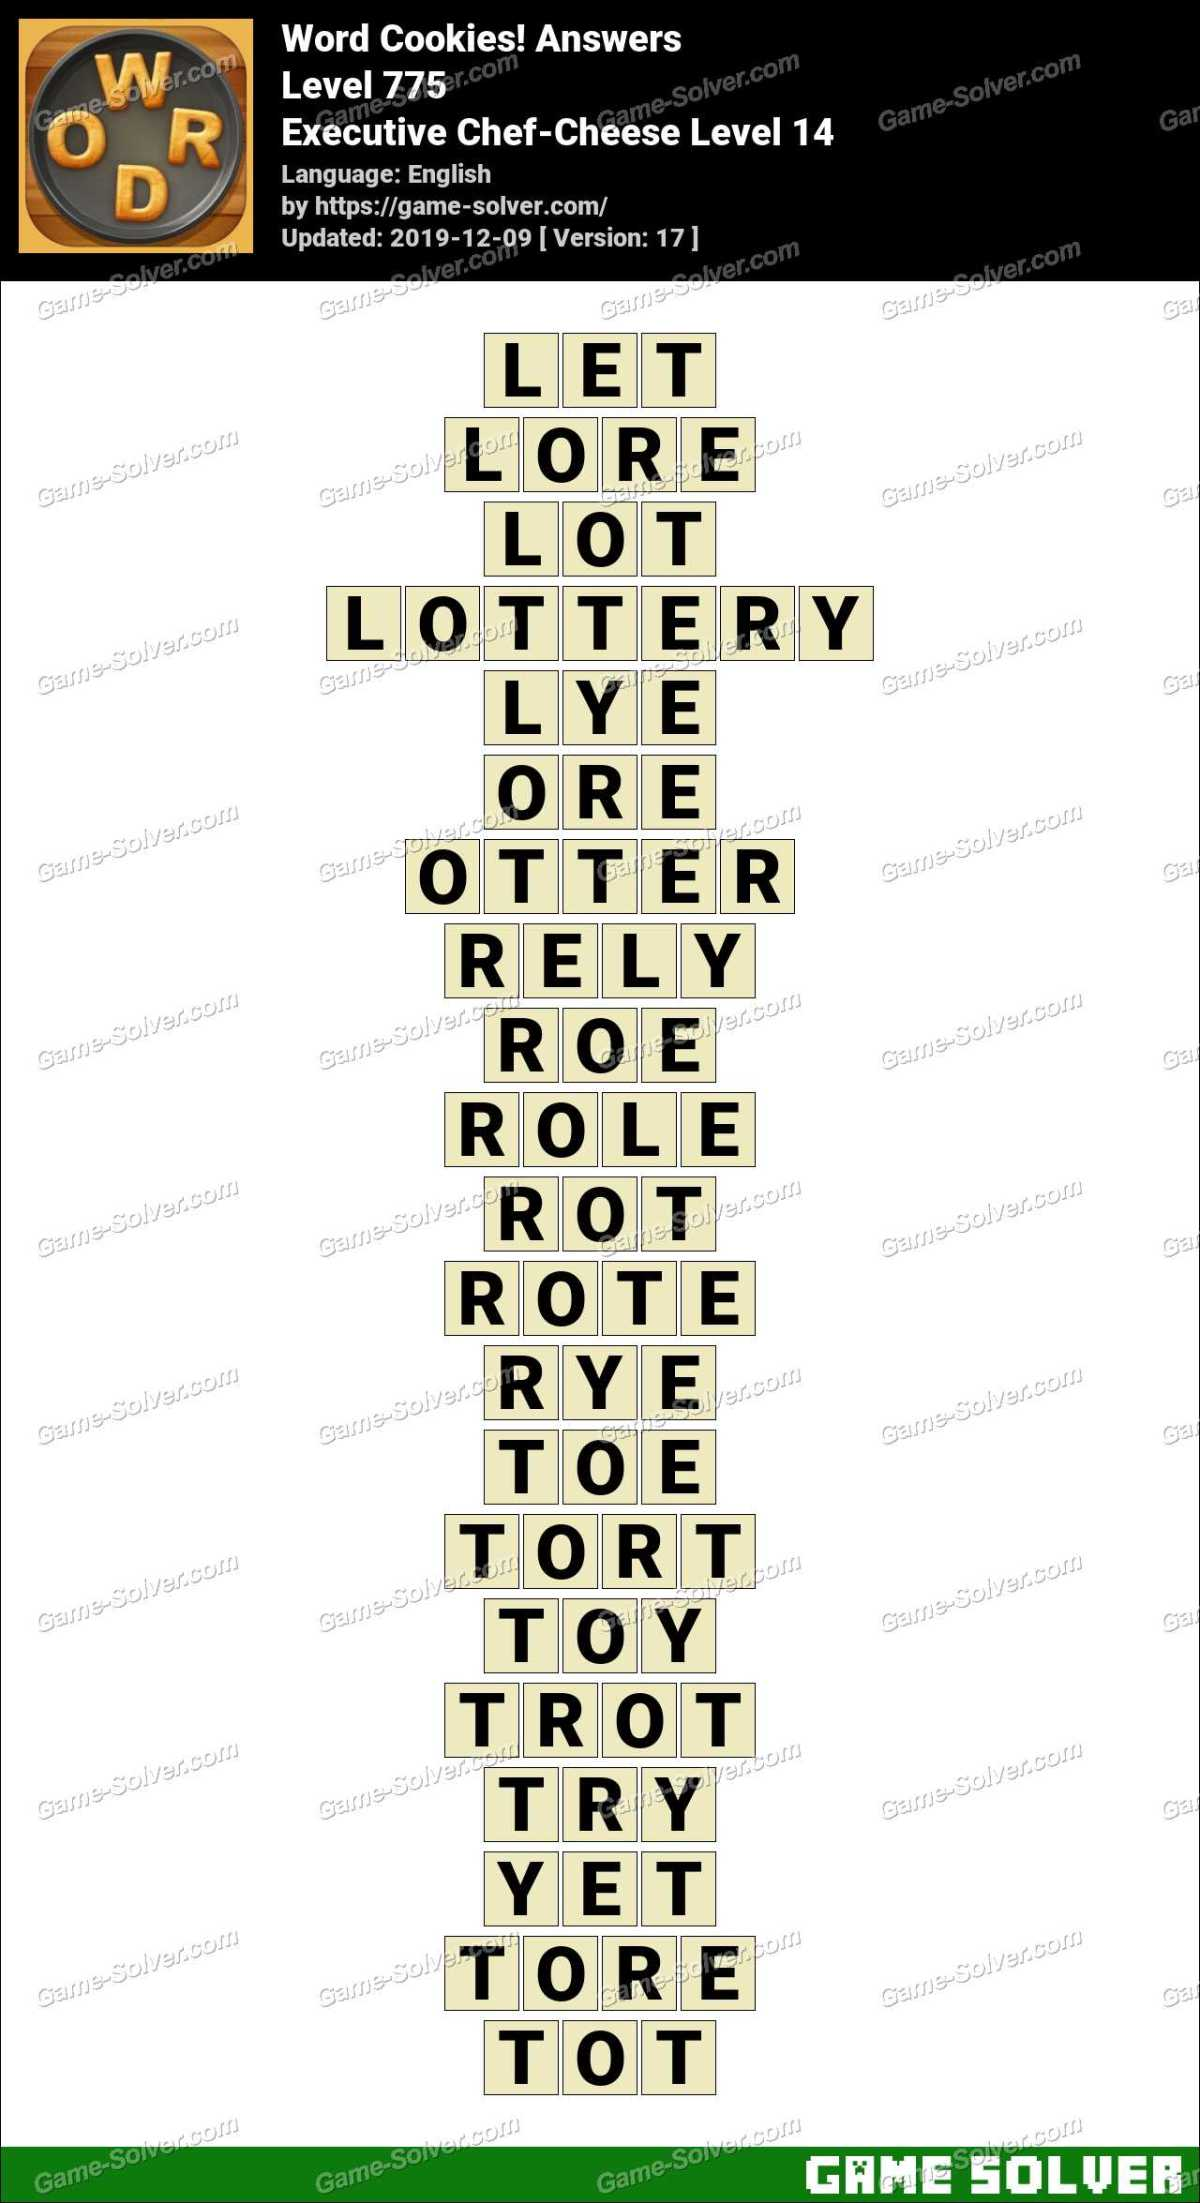 Word Cookies Executive Chef-Cheese Level 14 Answers